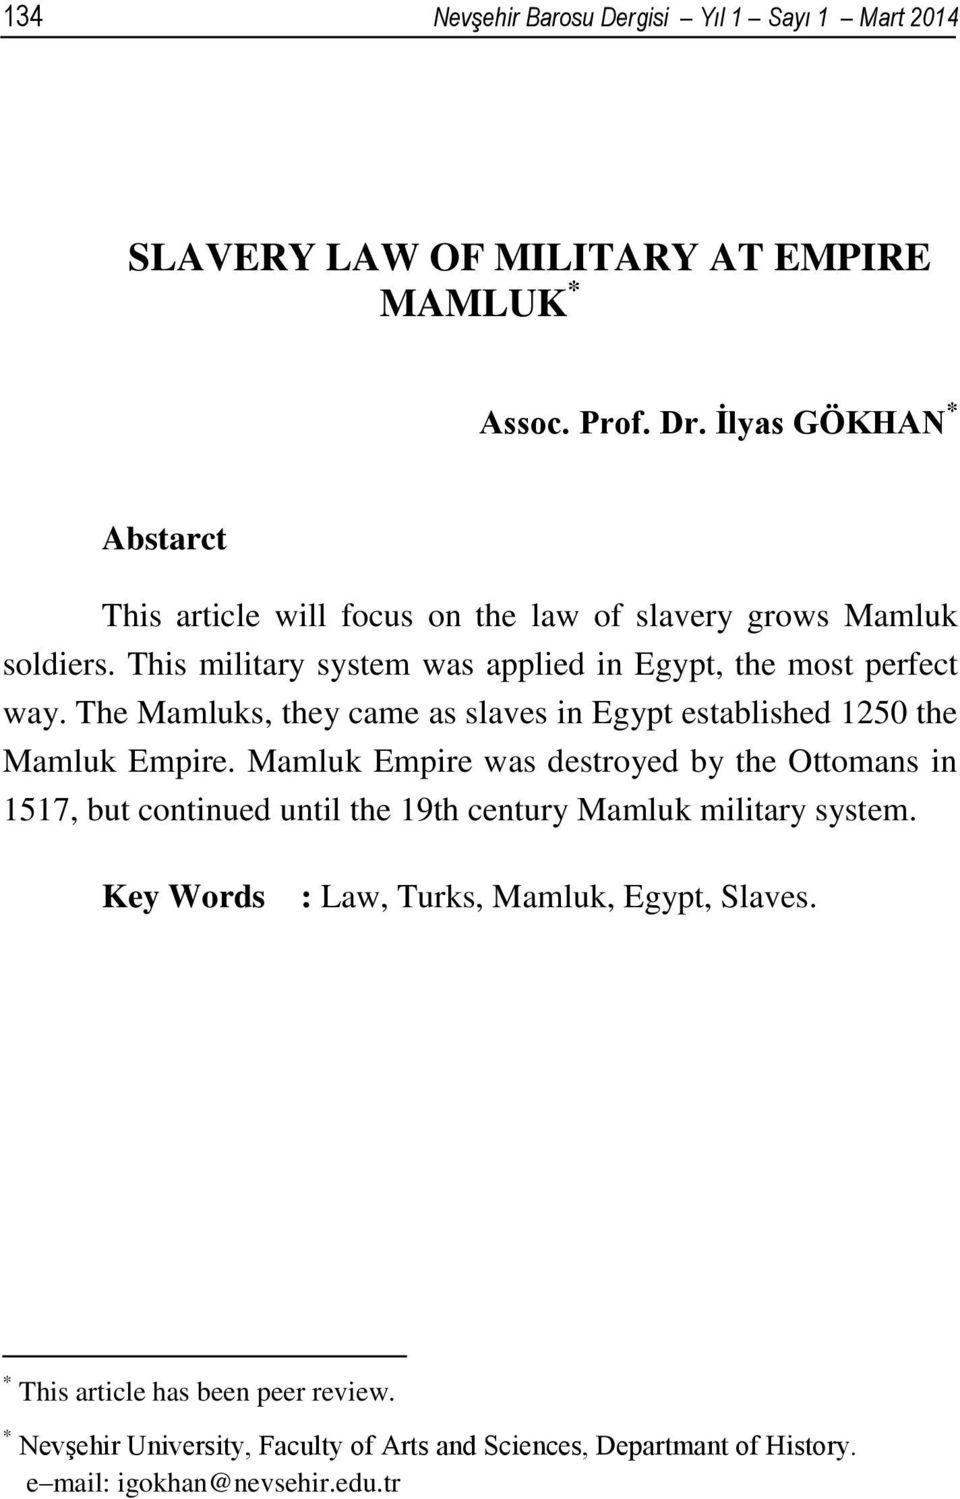 The Mamluks, they came as slaves in Egypt established 1250 the Mamluk Empire.